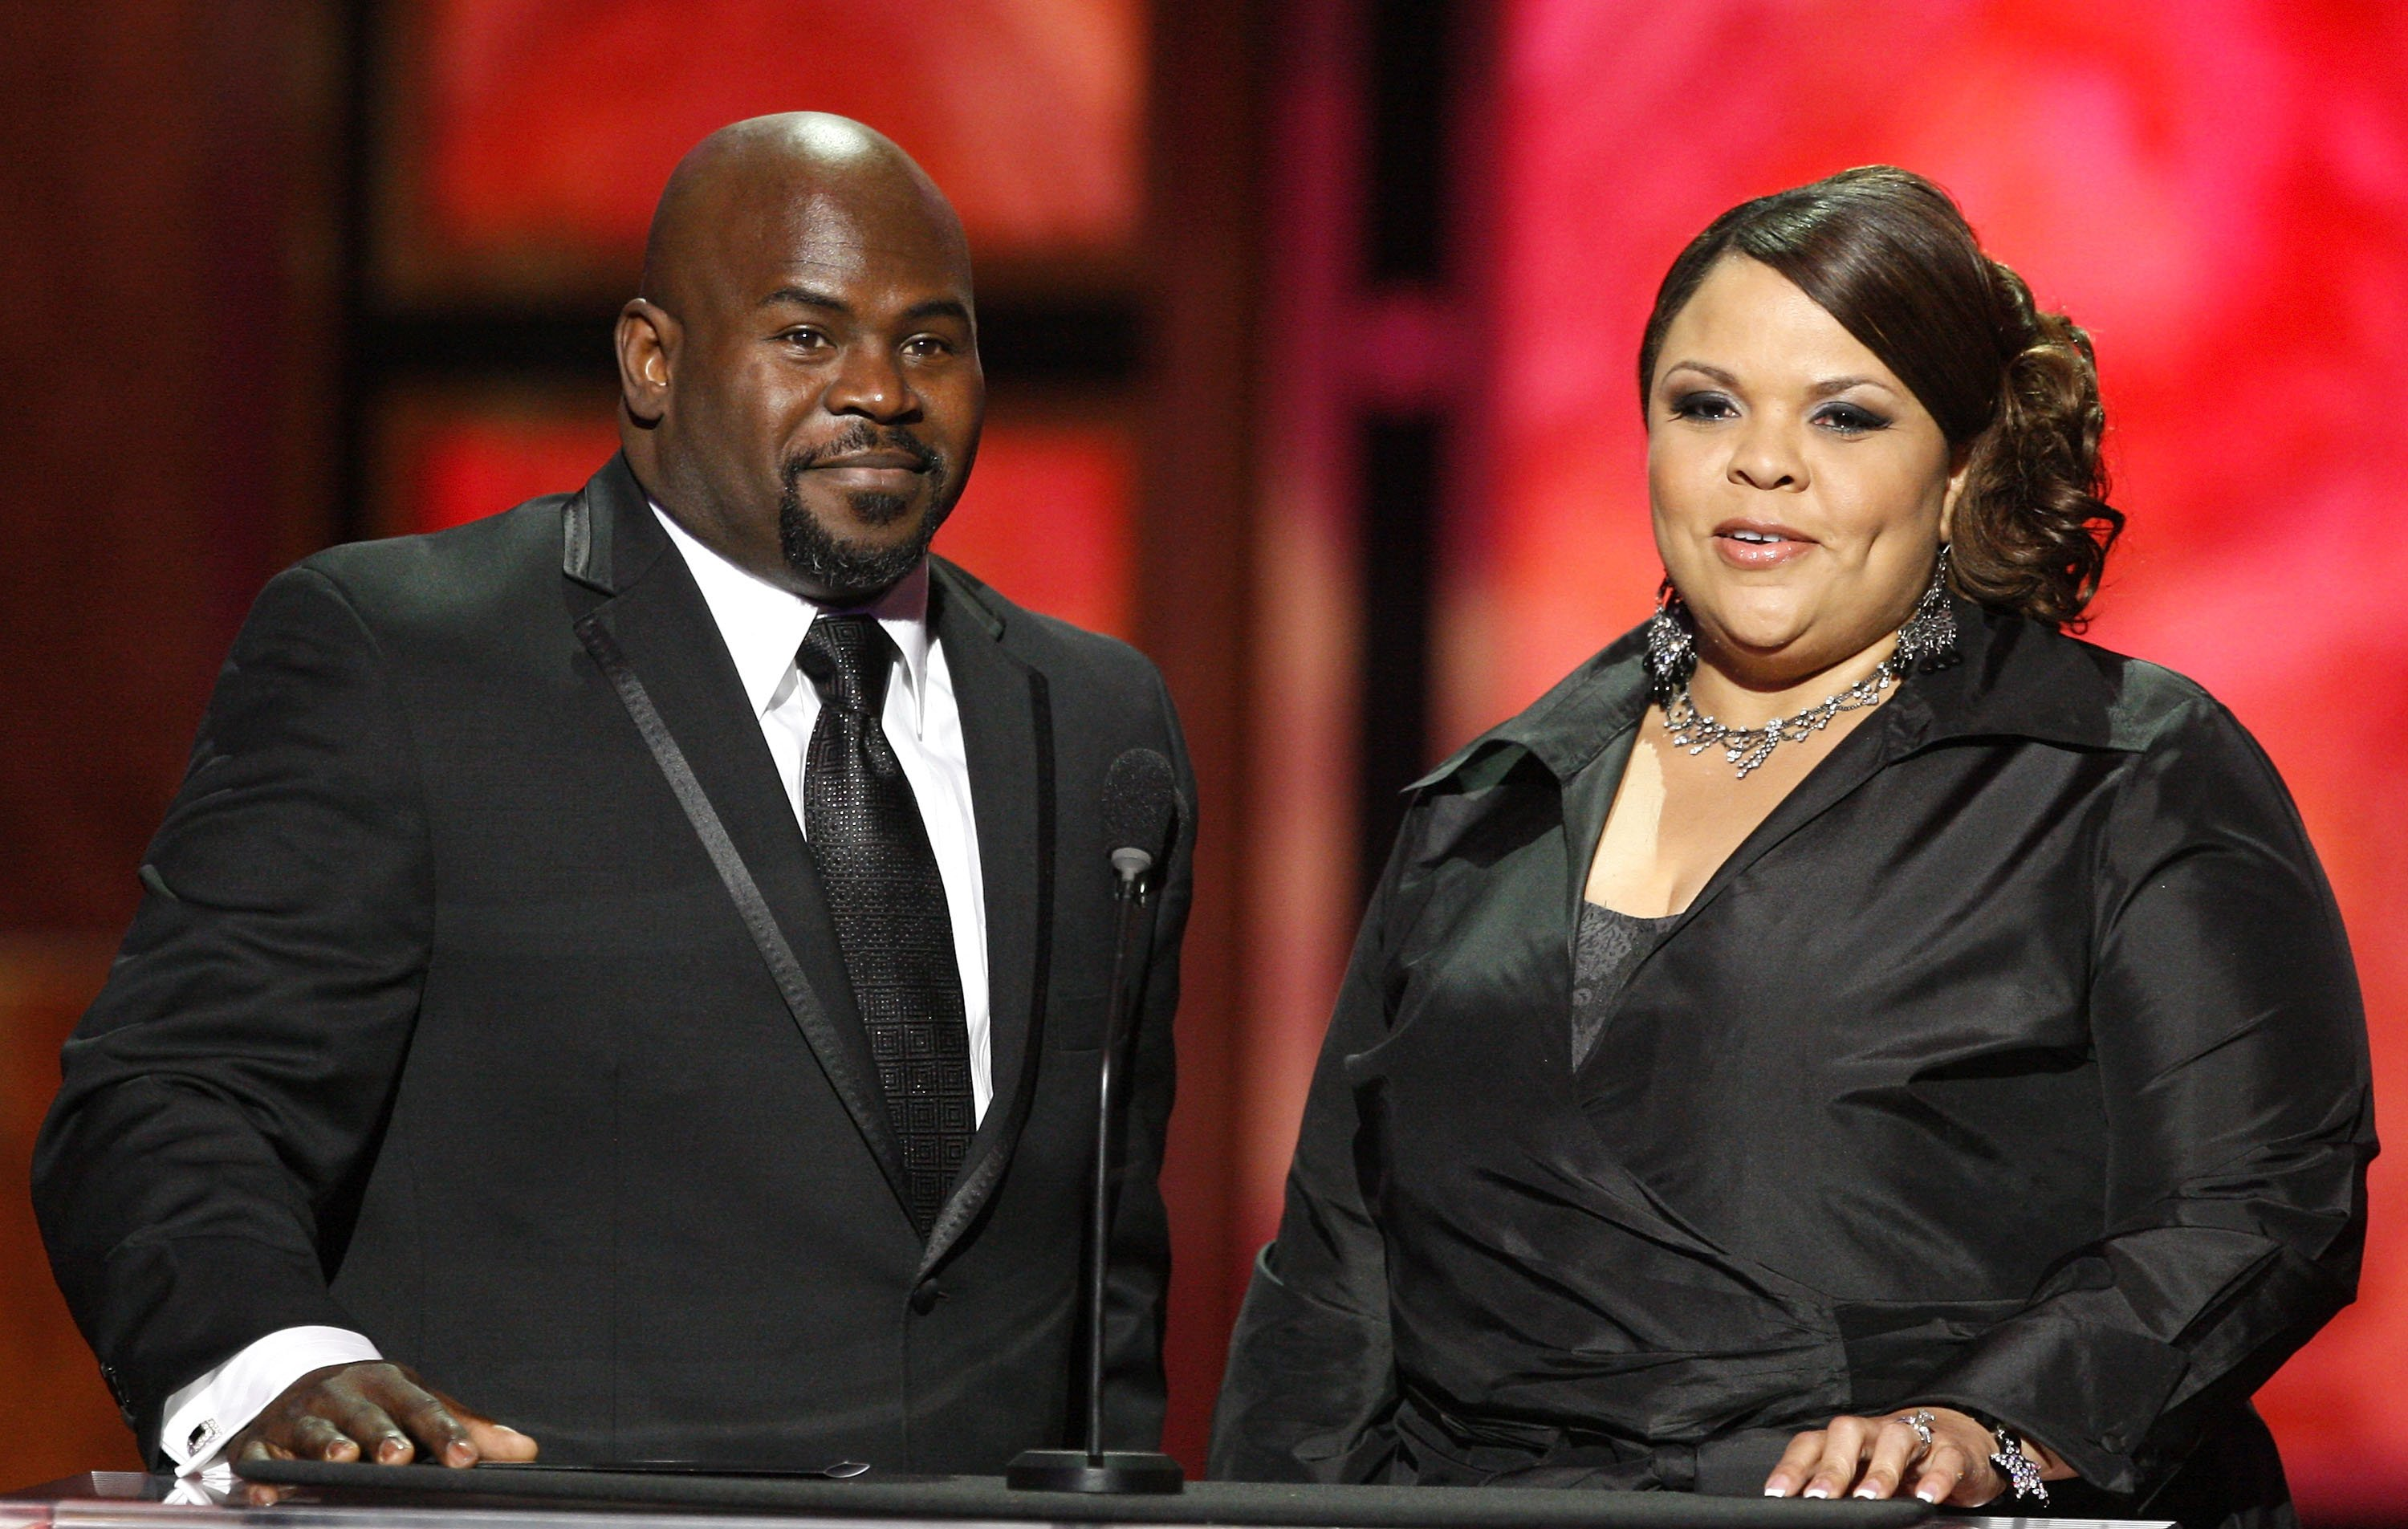 David Mann and Tamela Mann speak during the 40th NAACP Image Awards held at the Shrine Auditorium on February 12, 2009   Photo: Getty Images